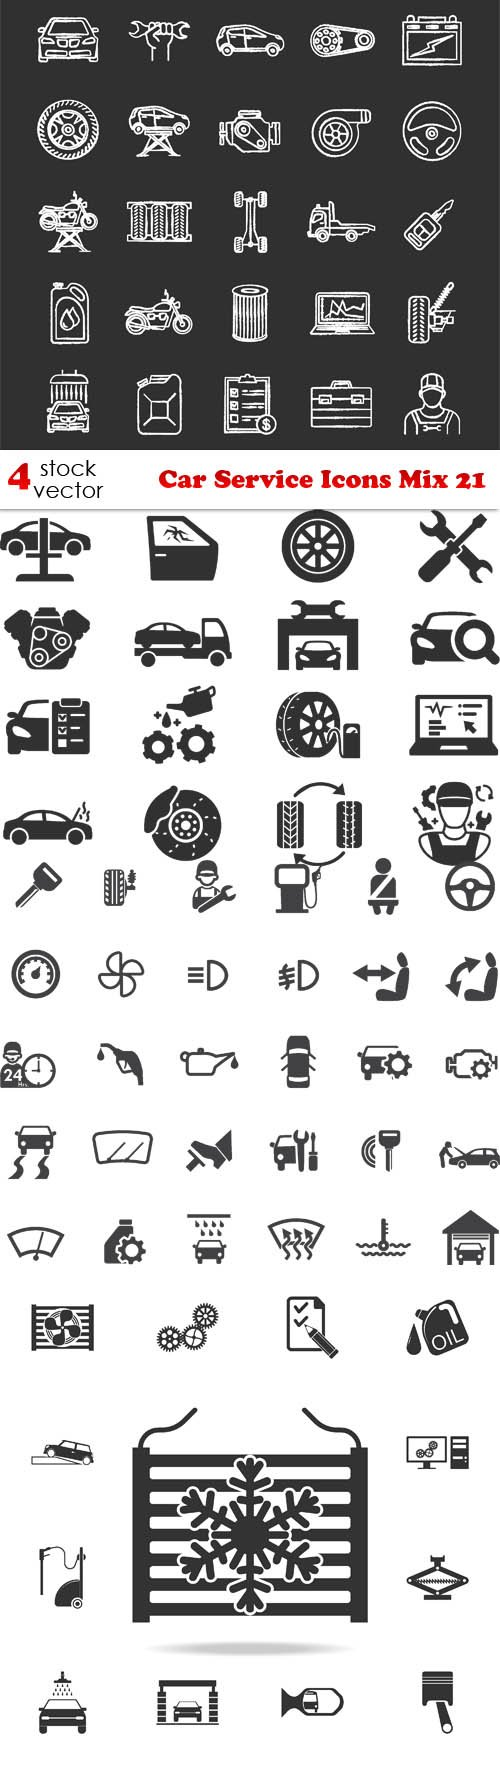 Vectors - Car Service Icons Mix 21